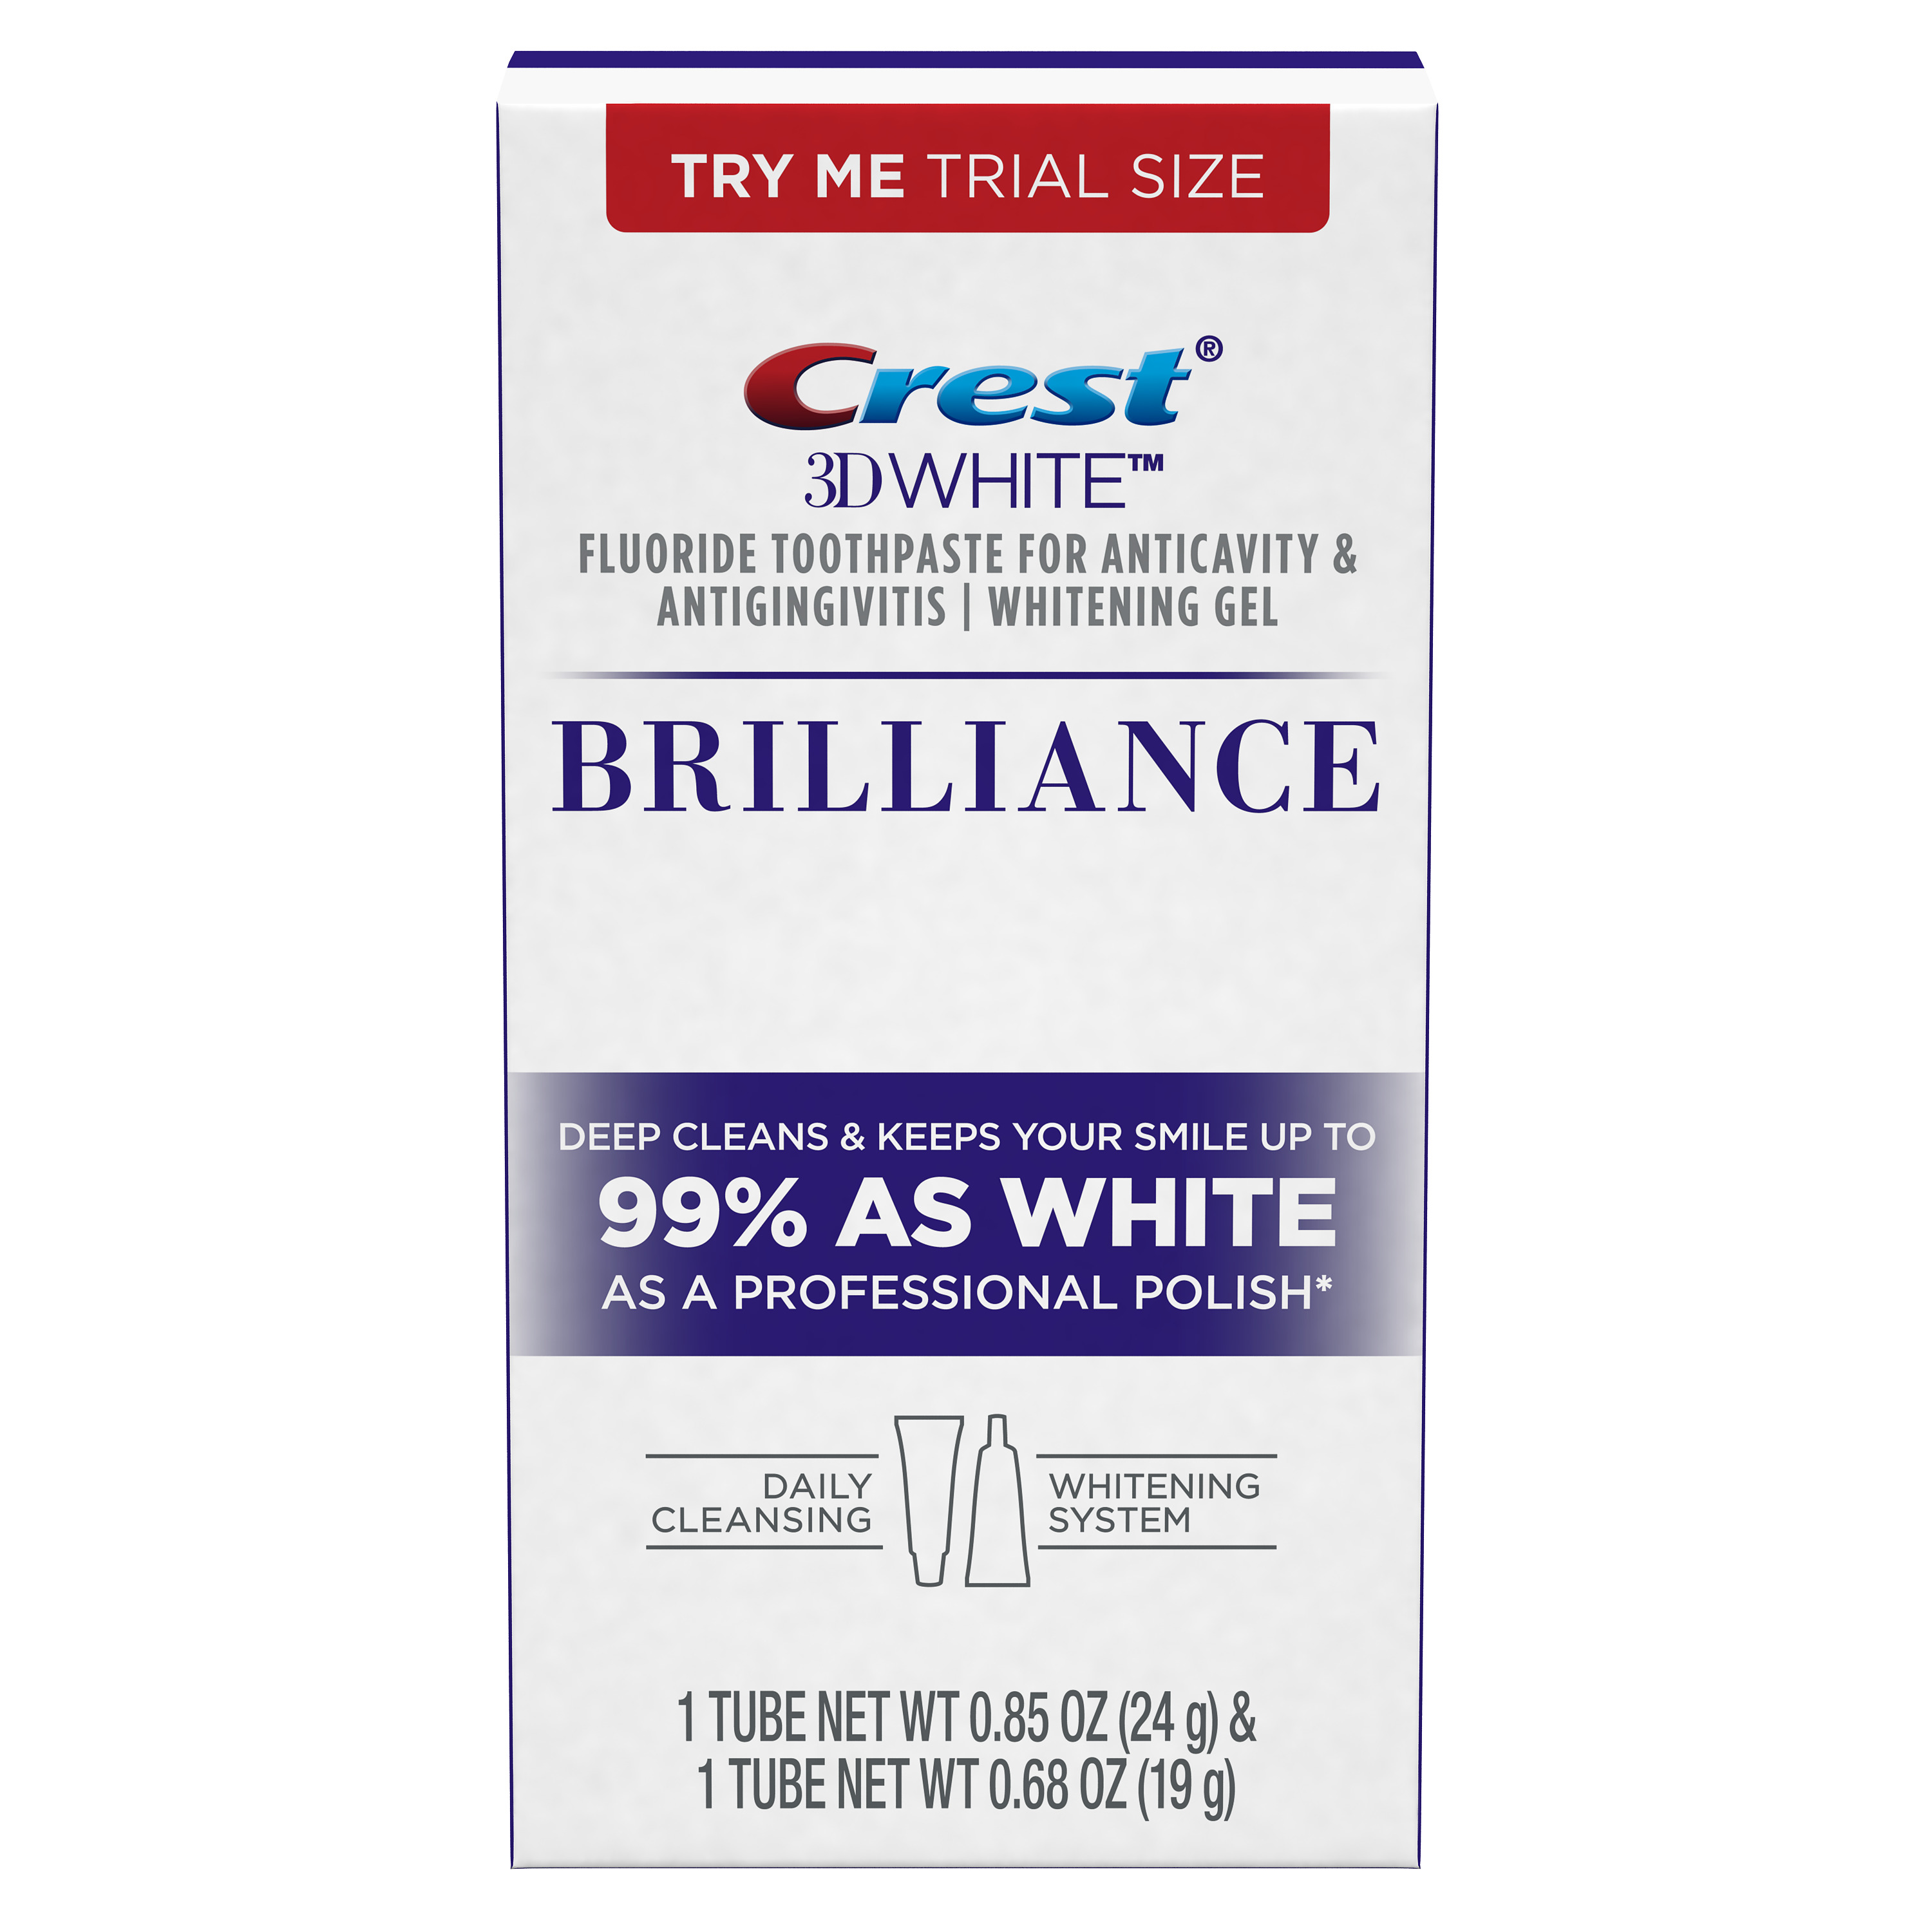 Crest 3D White Brilliance Daily Cleansing Toothpaste and Whitening Gel System .85 Oz and .68 Oz